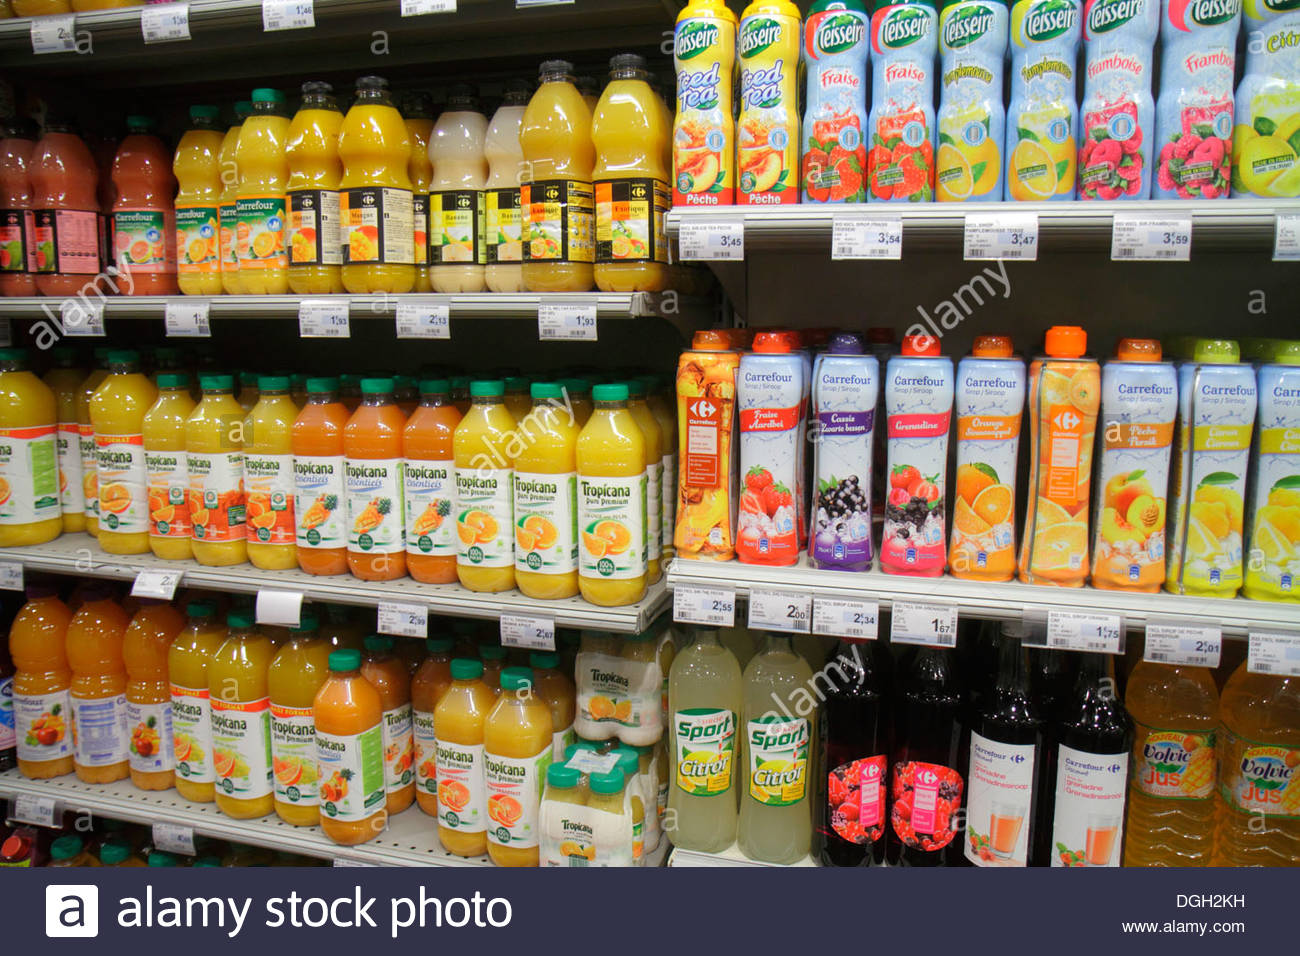 Paris France Europe French 9th arrondissement Rue Jean-Baptiste Pigalle Carrefour City supermarket grocery store shopping sale s - Stock Image